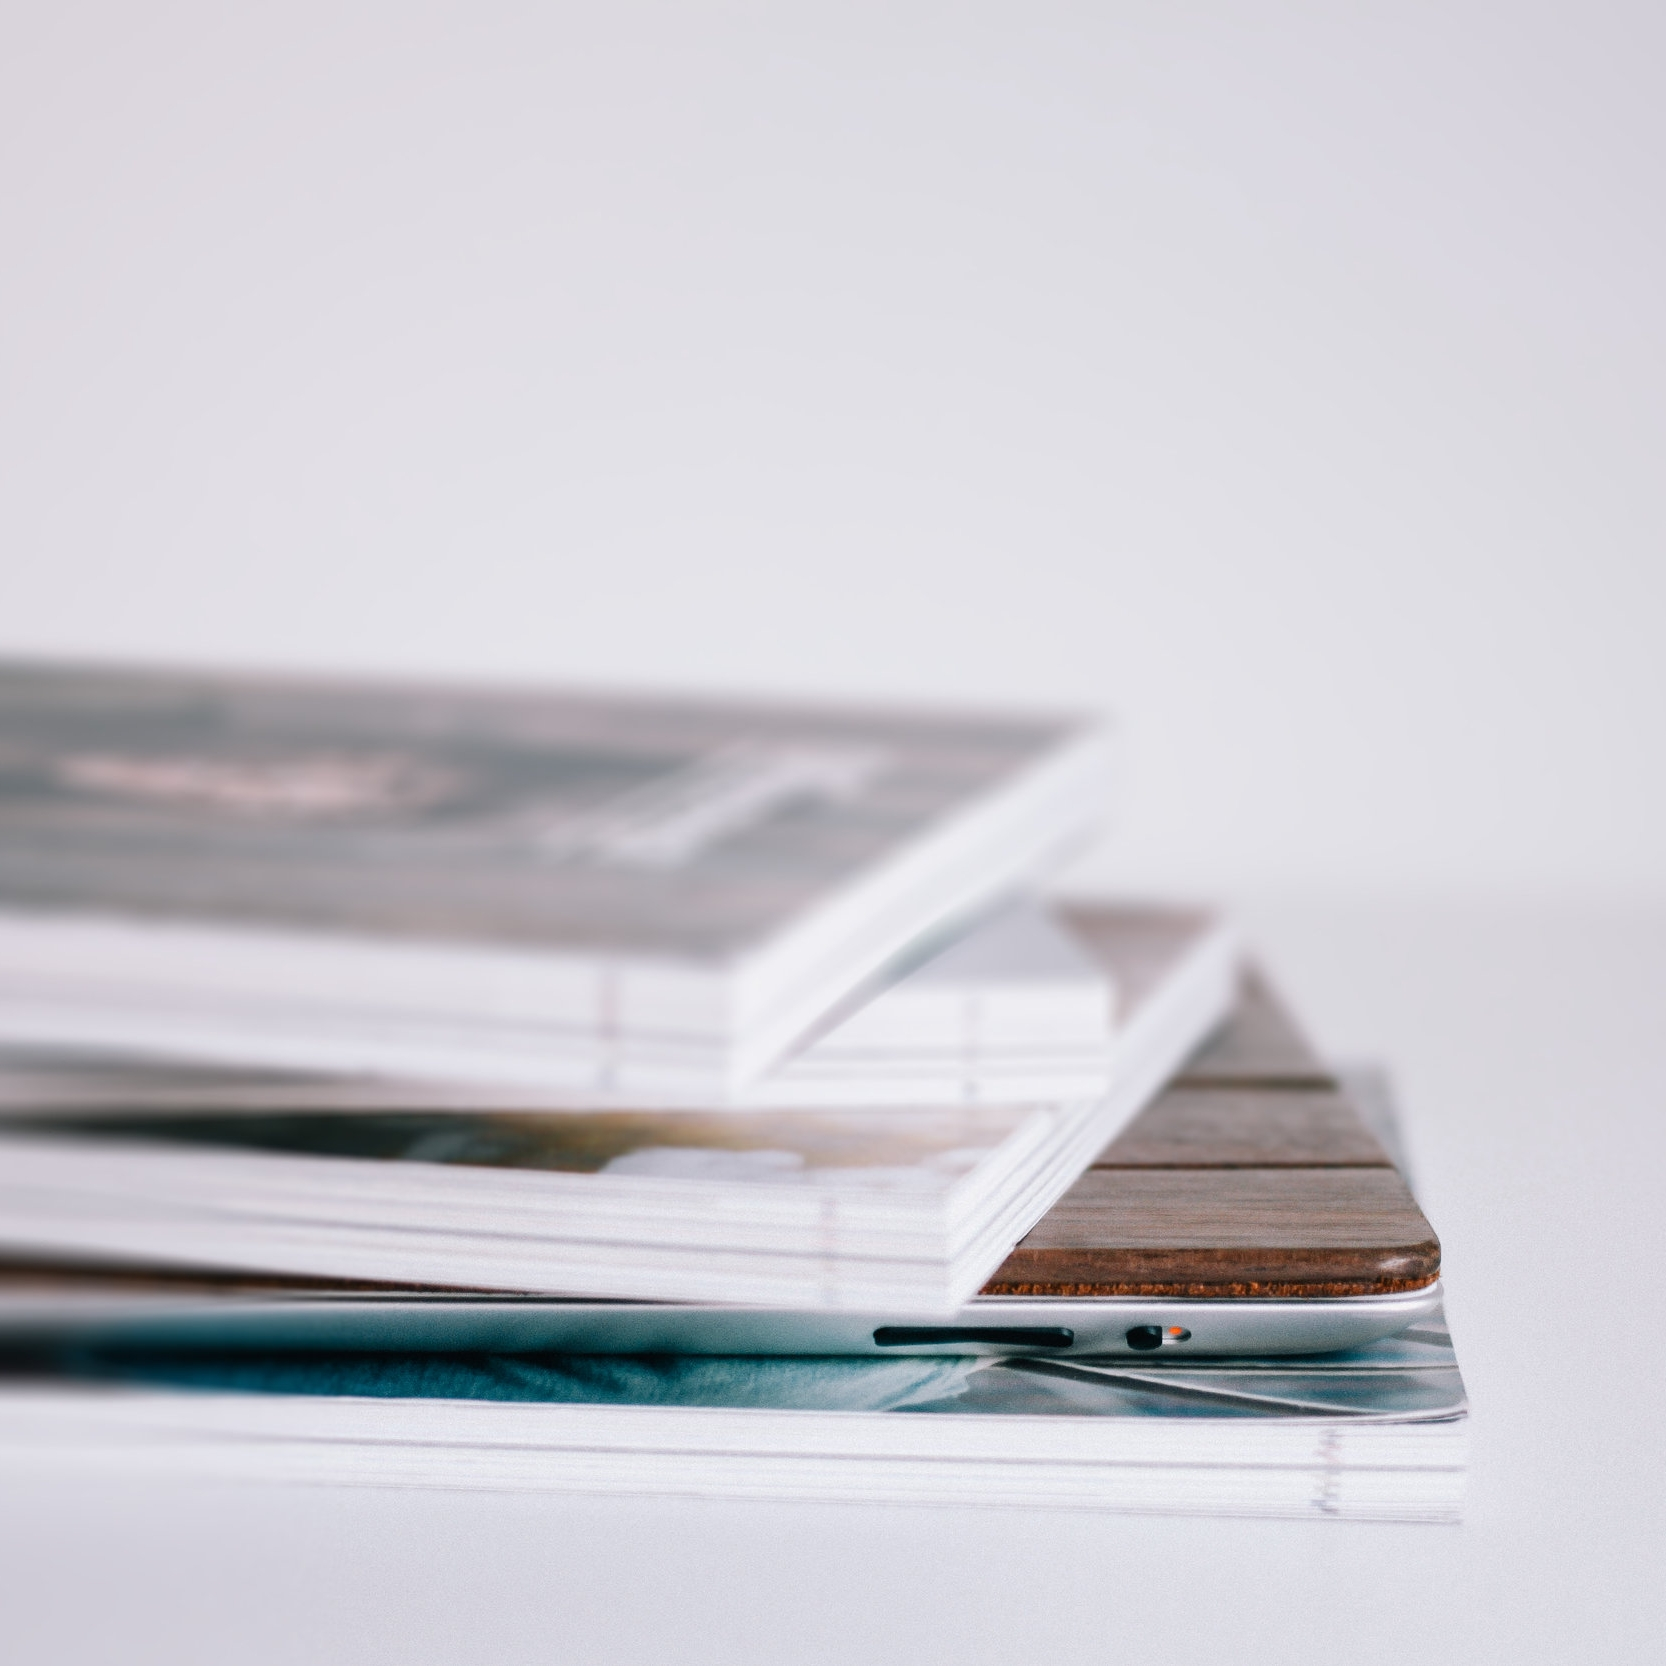 Find Resources in the Notebook